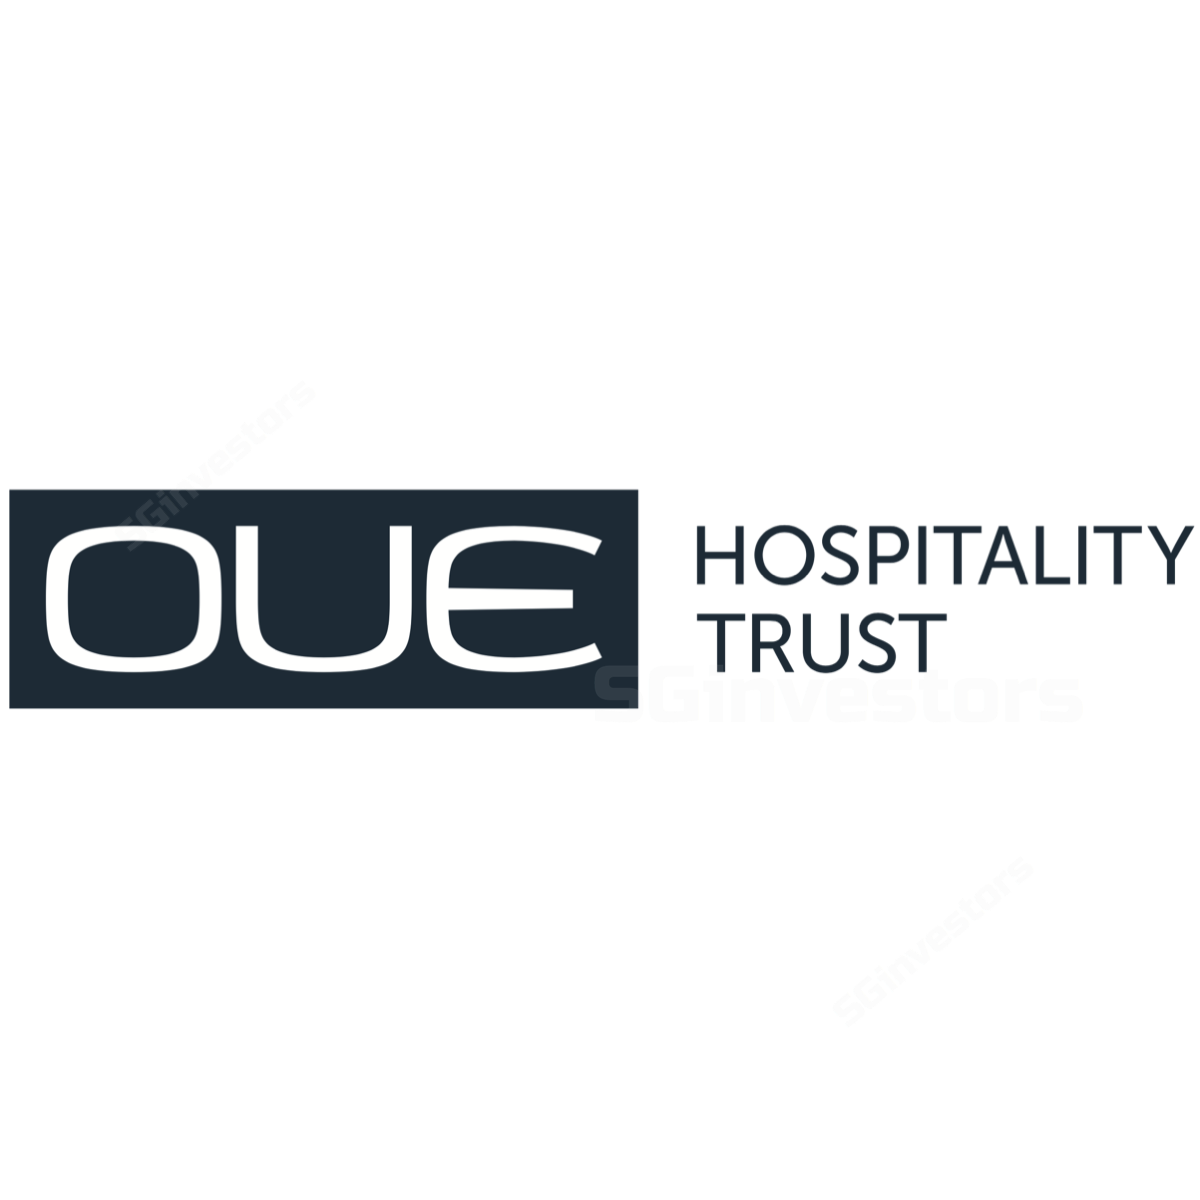 OUE Hospitality Trust - OCBC Investment 2017-11-02: Strong RevPAR Growth Continues